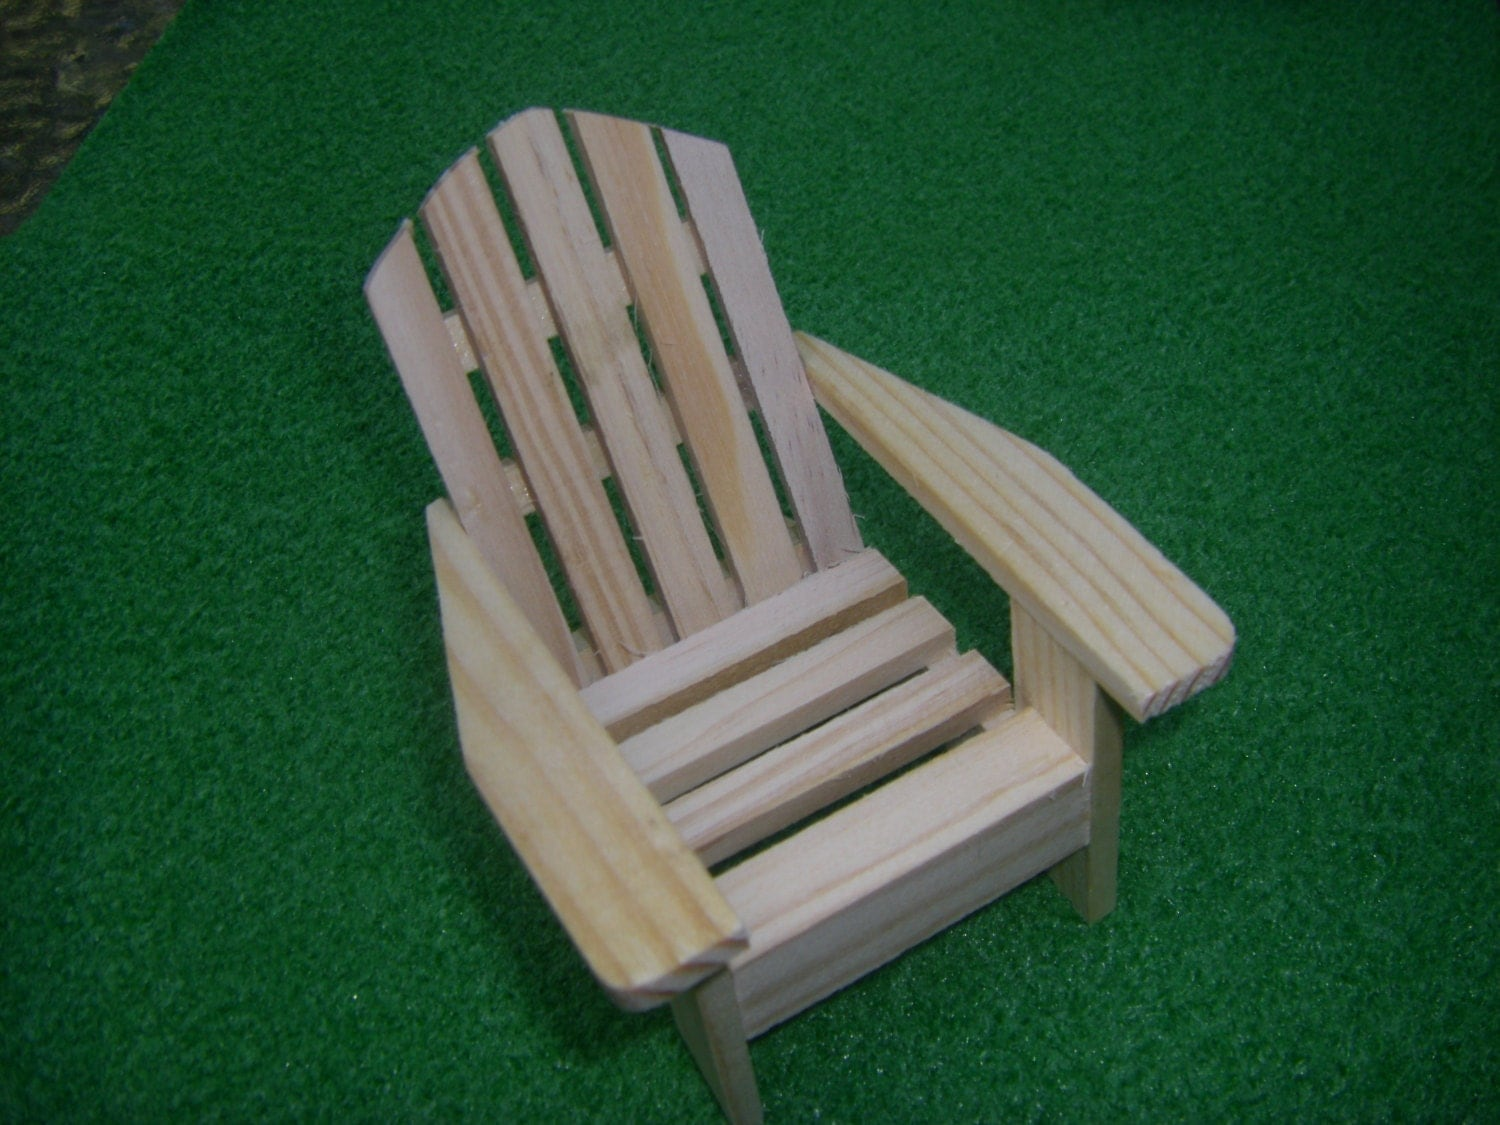 Mini Adirondack Chairs Adirondack Chair Beach Chair Fairy Garden Miniature